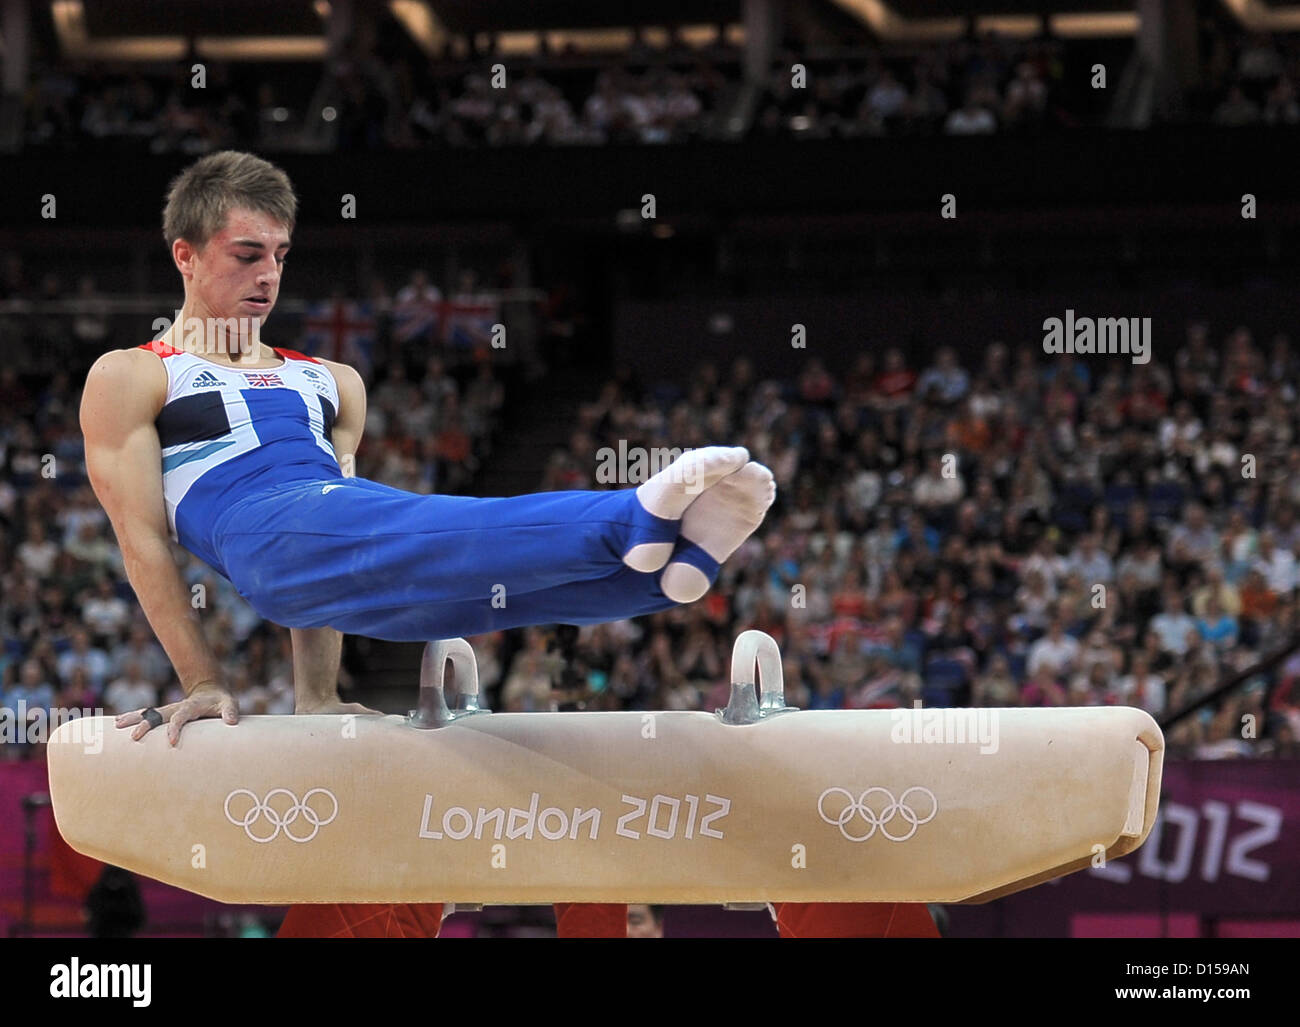 Max Whitlock (GBR, Grande-Bretagne). Gymnastique individuelle Photo Stock